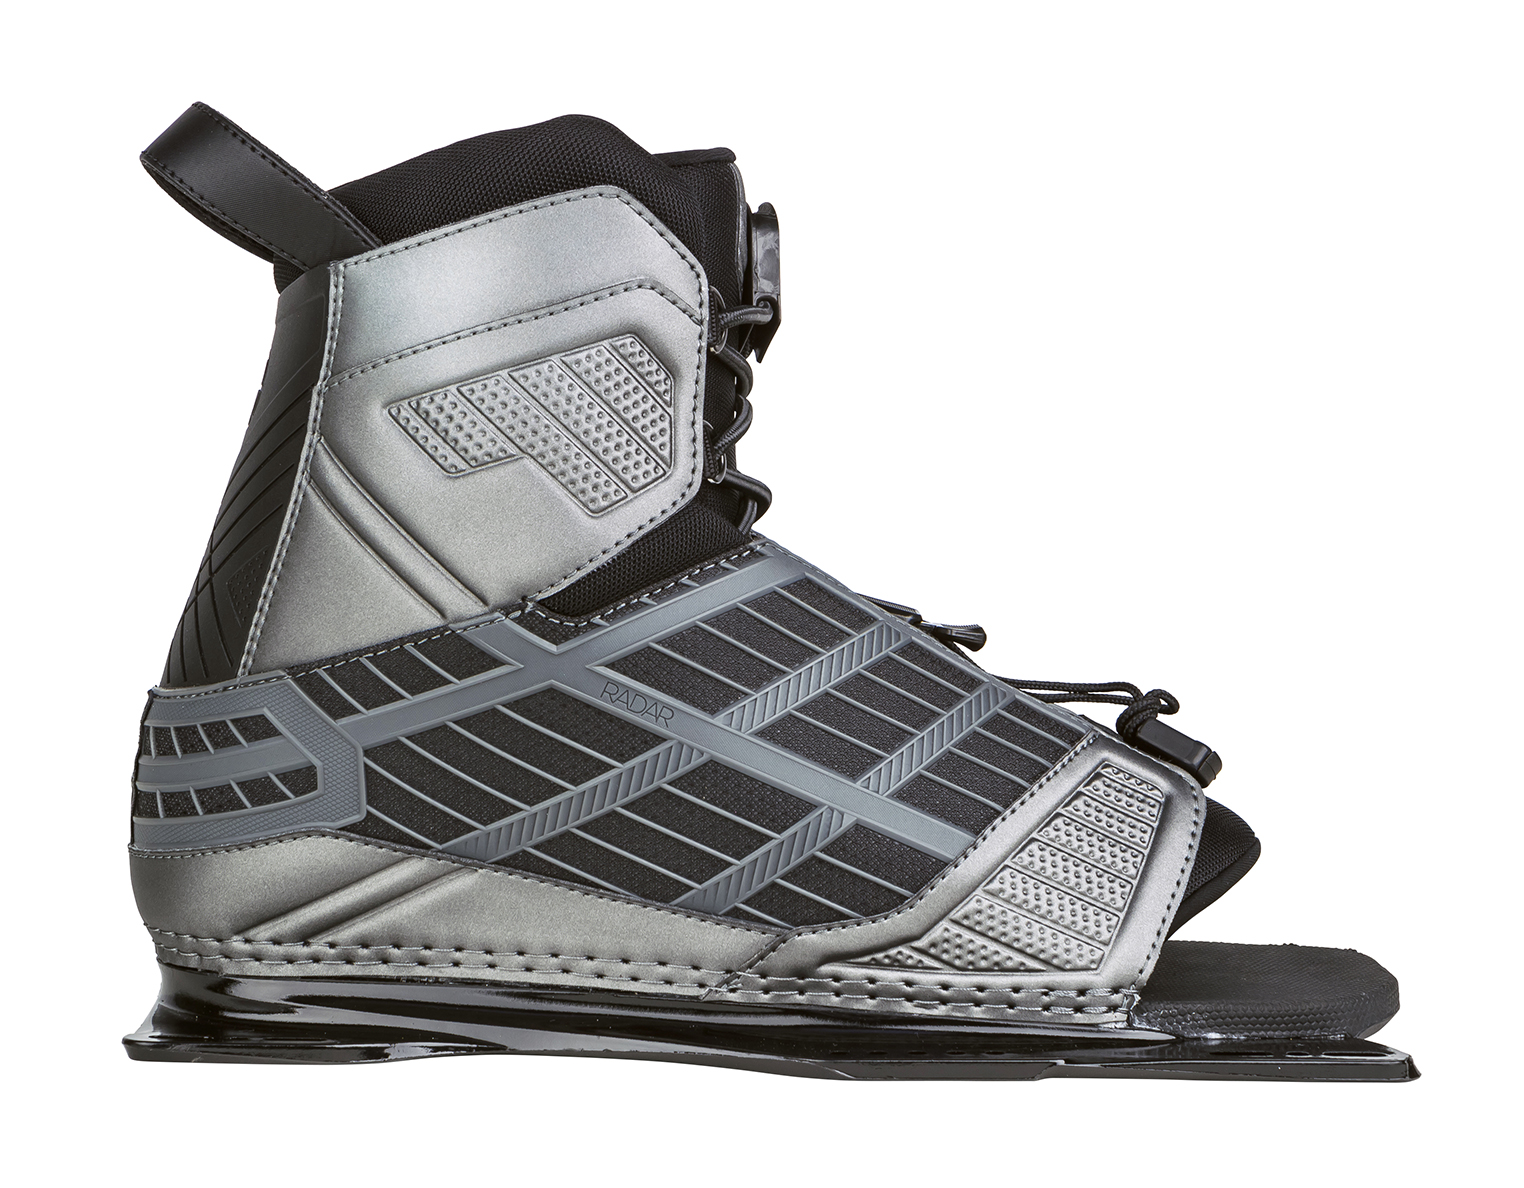 VECTOR BOOT W/FRONT FEATHER FRAME - GREY RADAR 2017